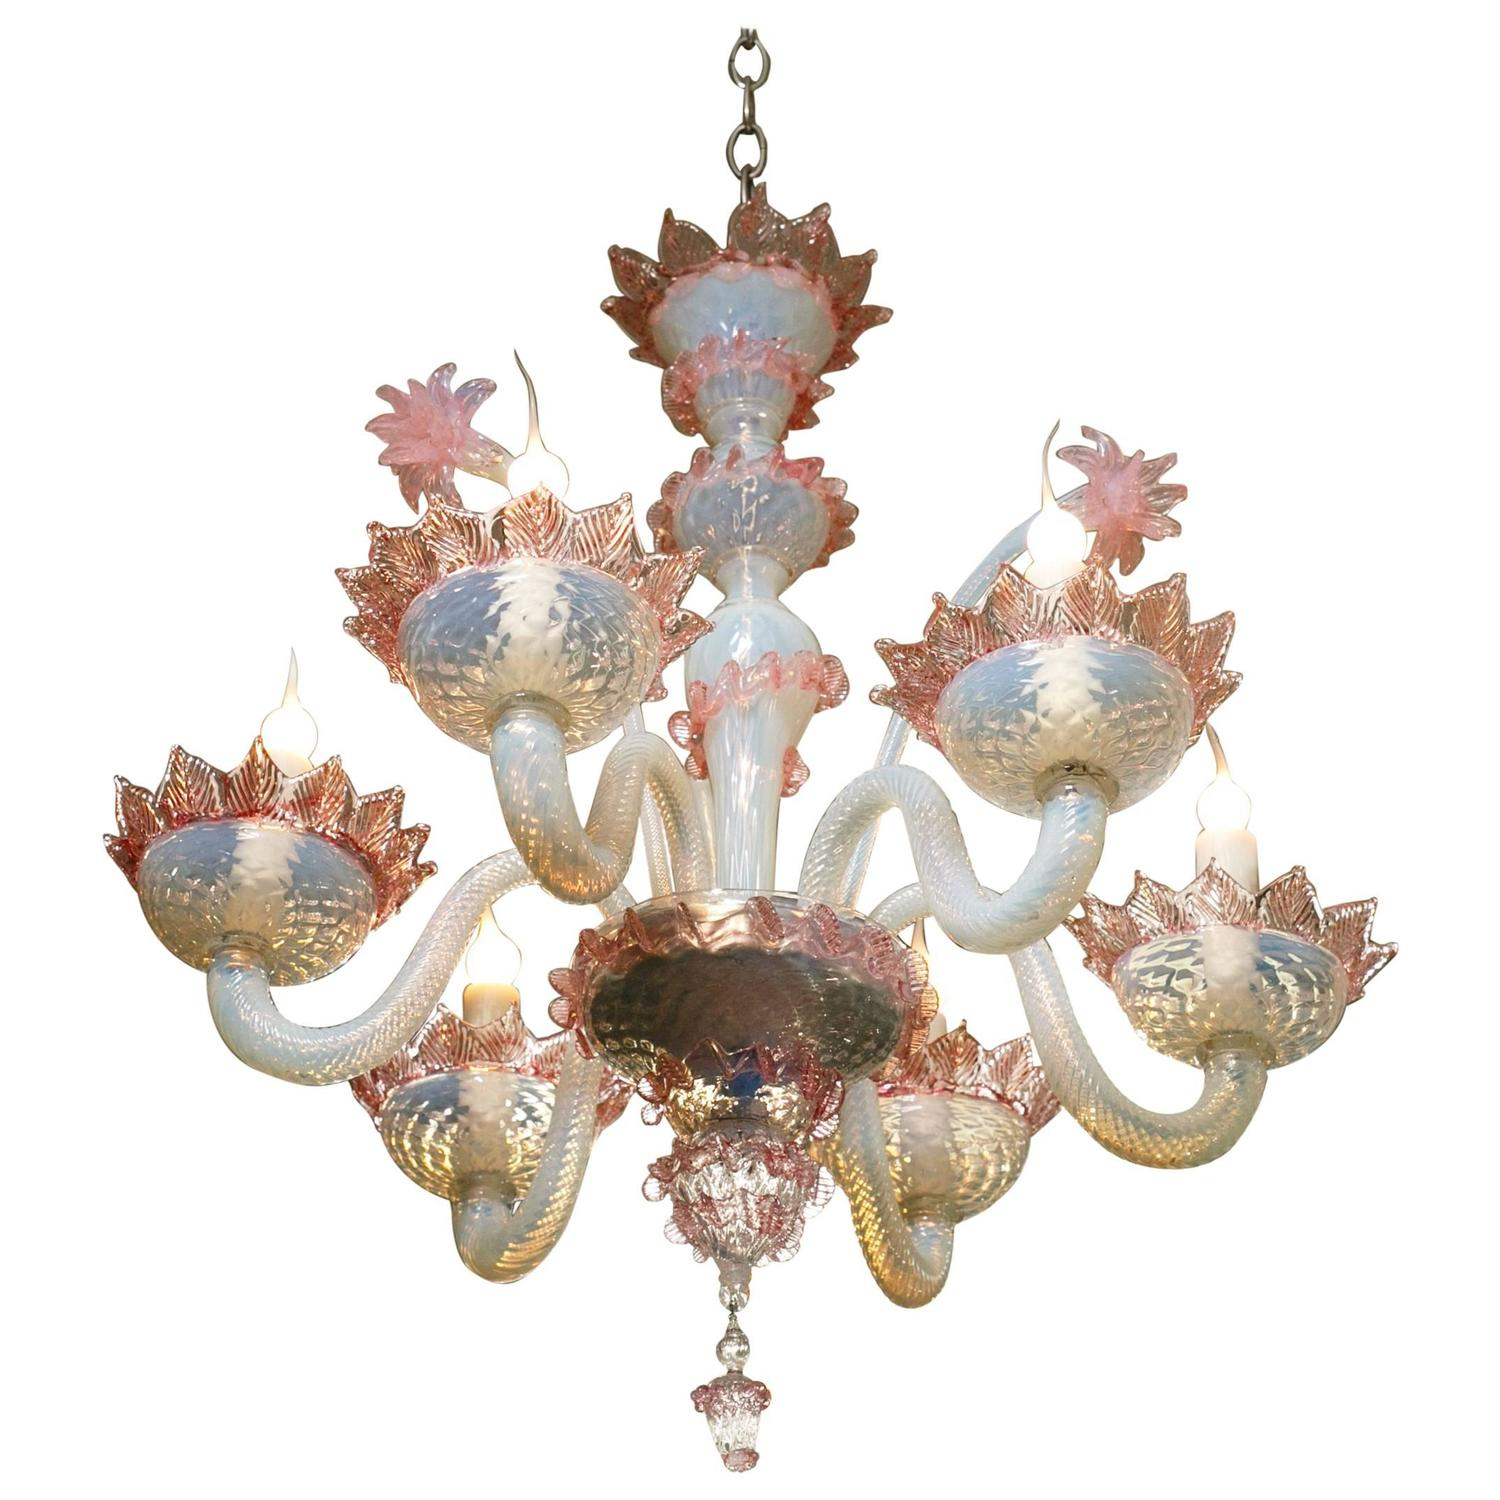 Pink And White Murano N Glass Chandelier With Flowers Circa 1940